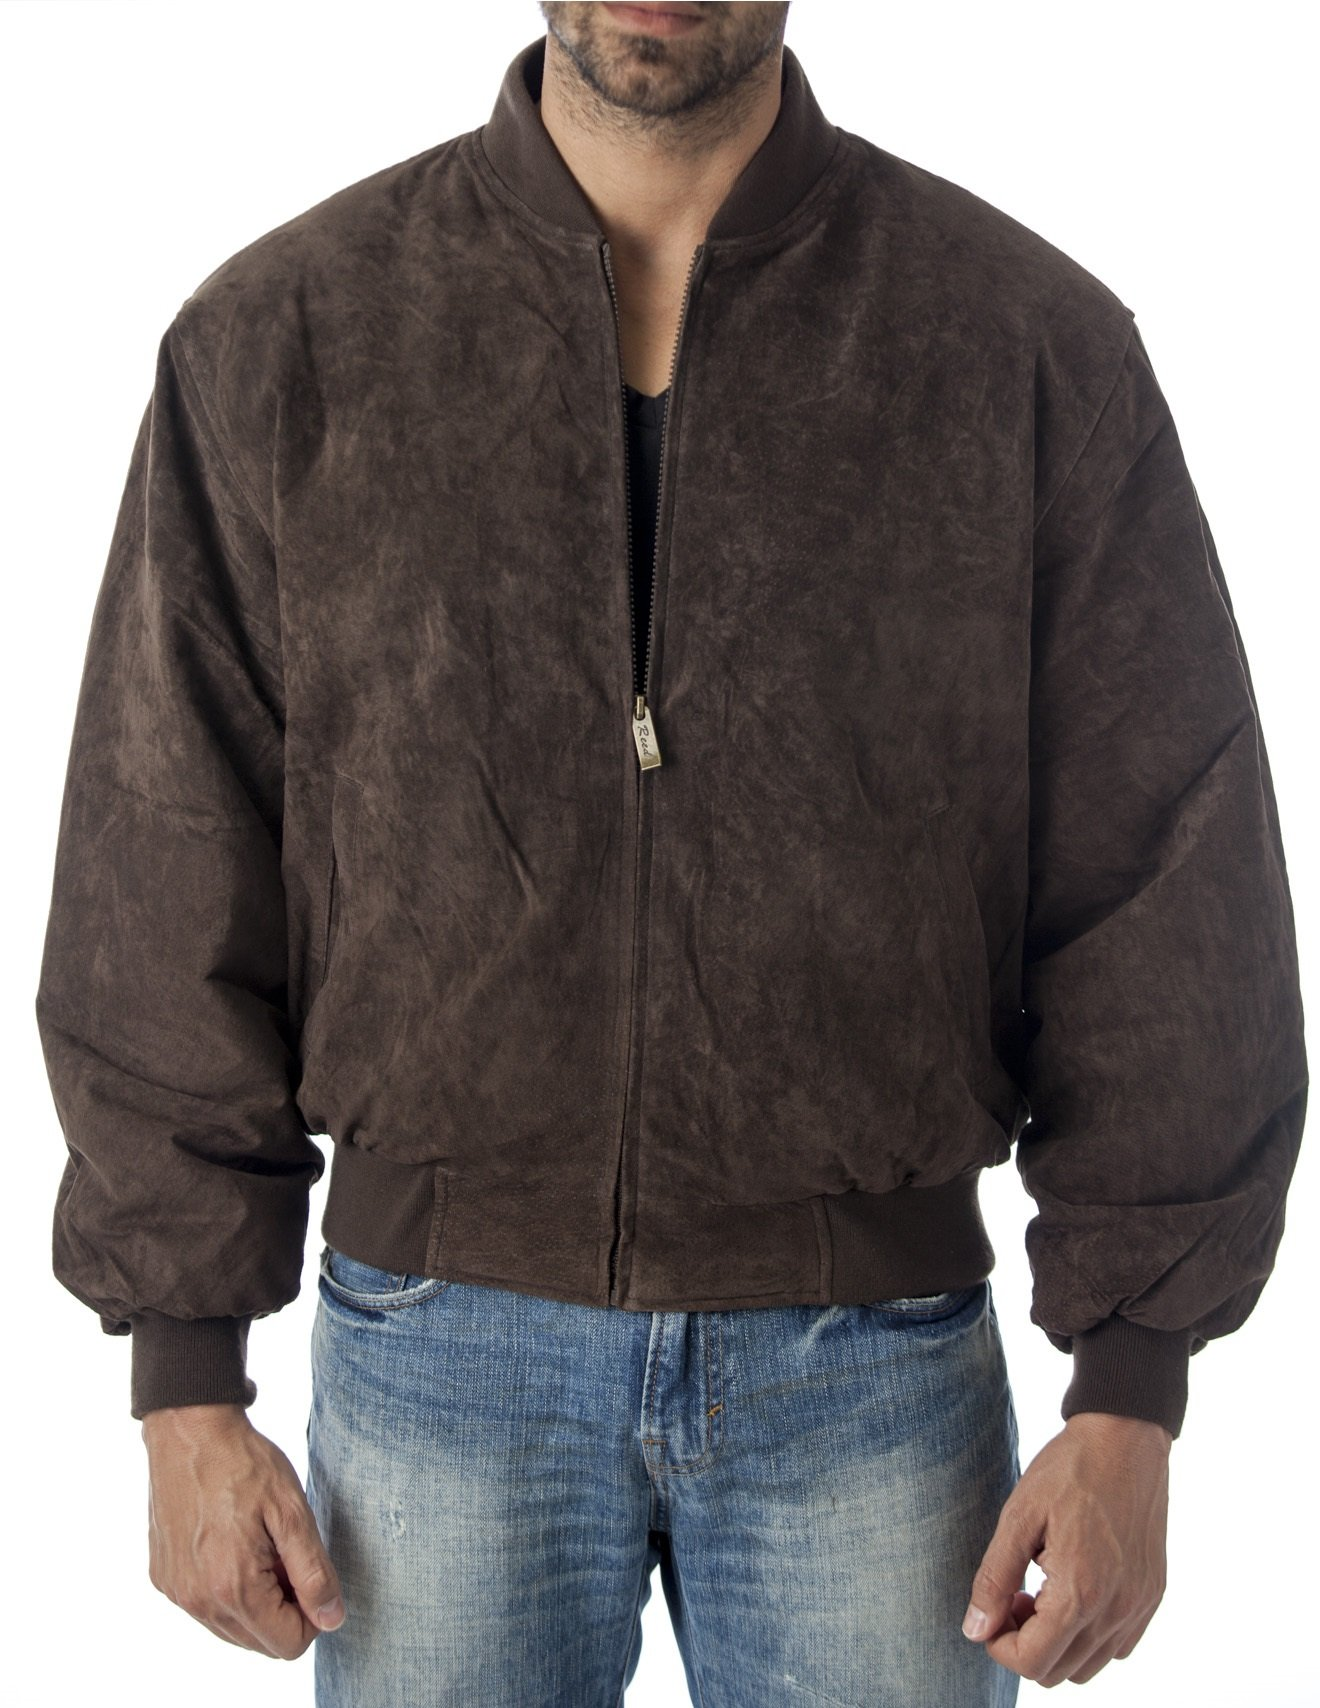 Baseball Suede Leather Bomber Jacket By Reed Est. 1950 (Imported) (Xl, Brown) by REED